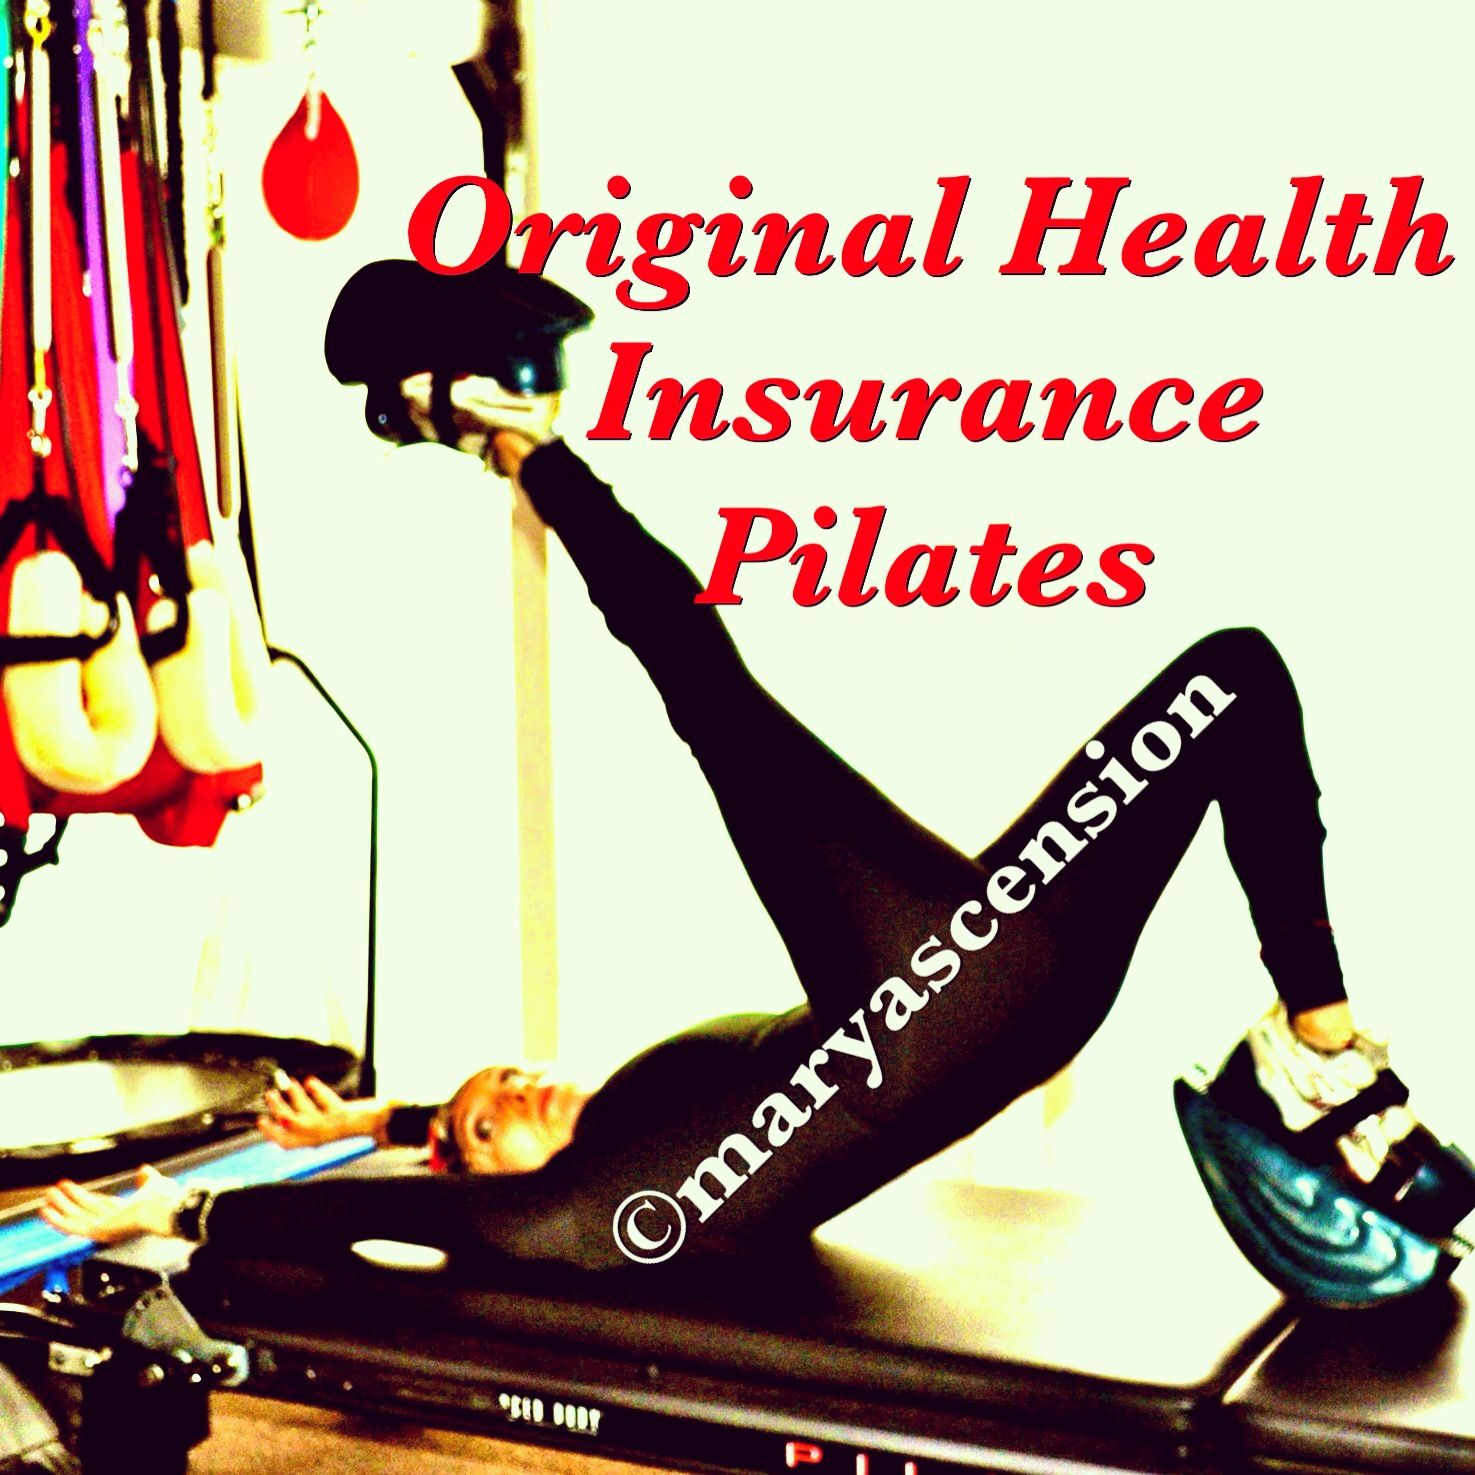 #pilates #health #fitness #workout